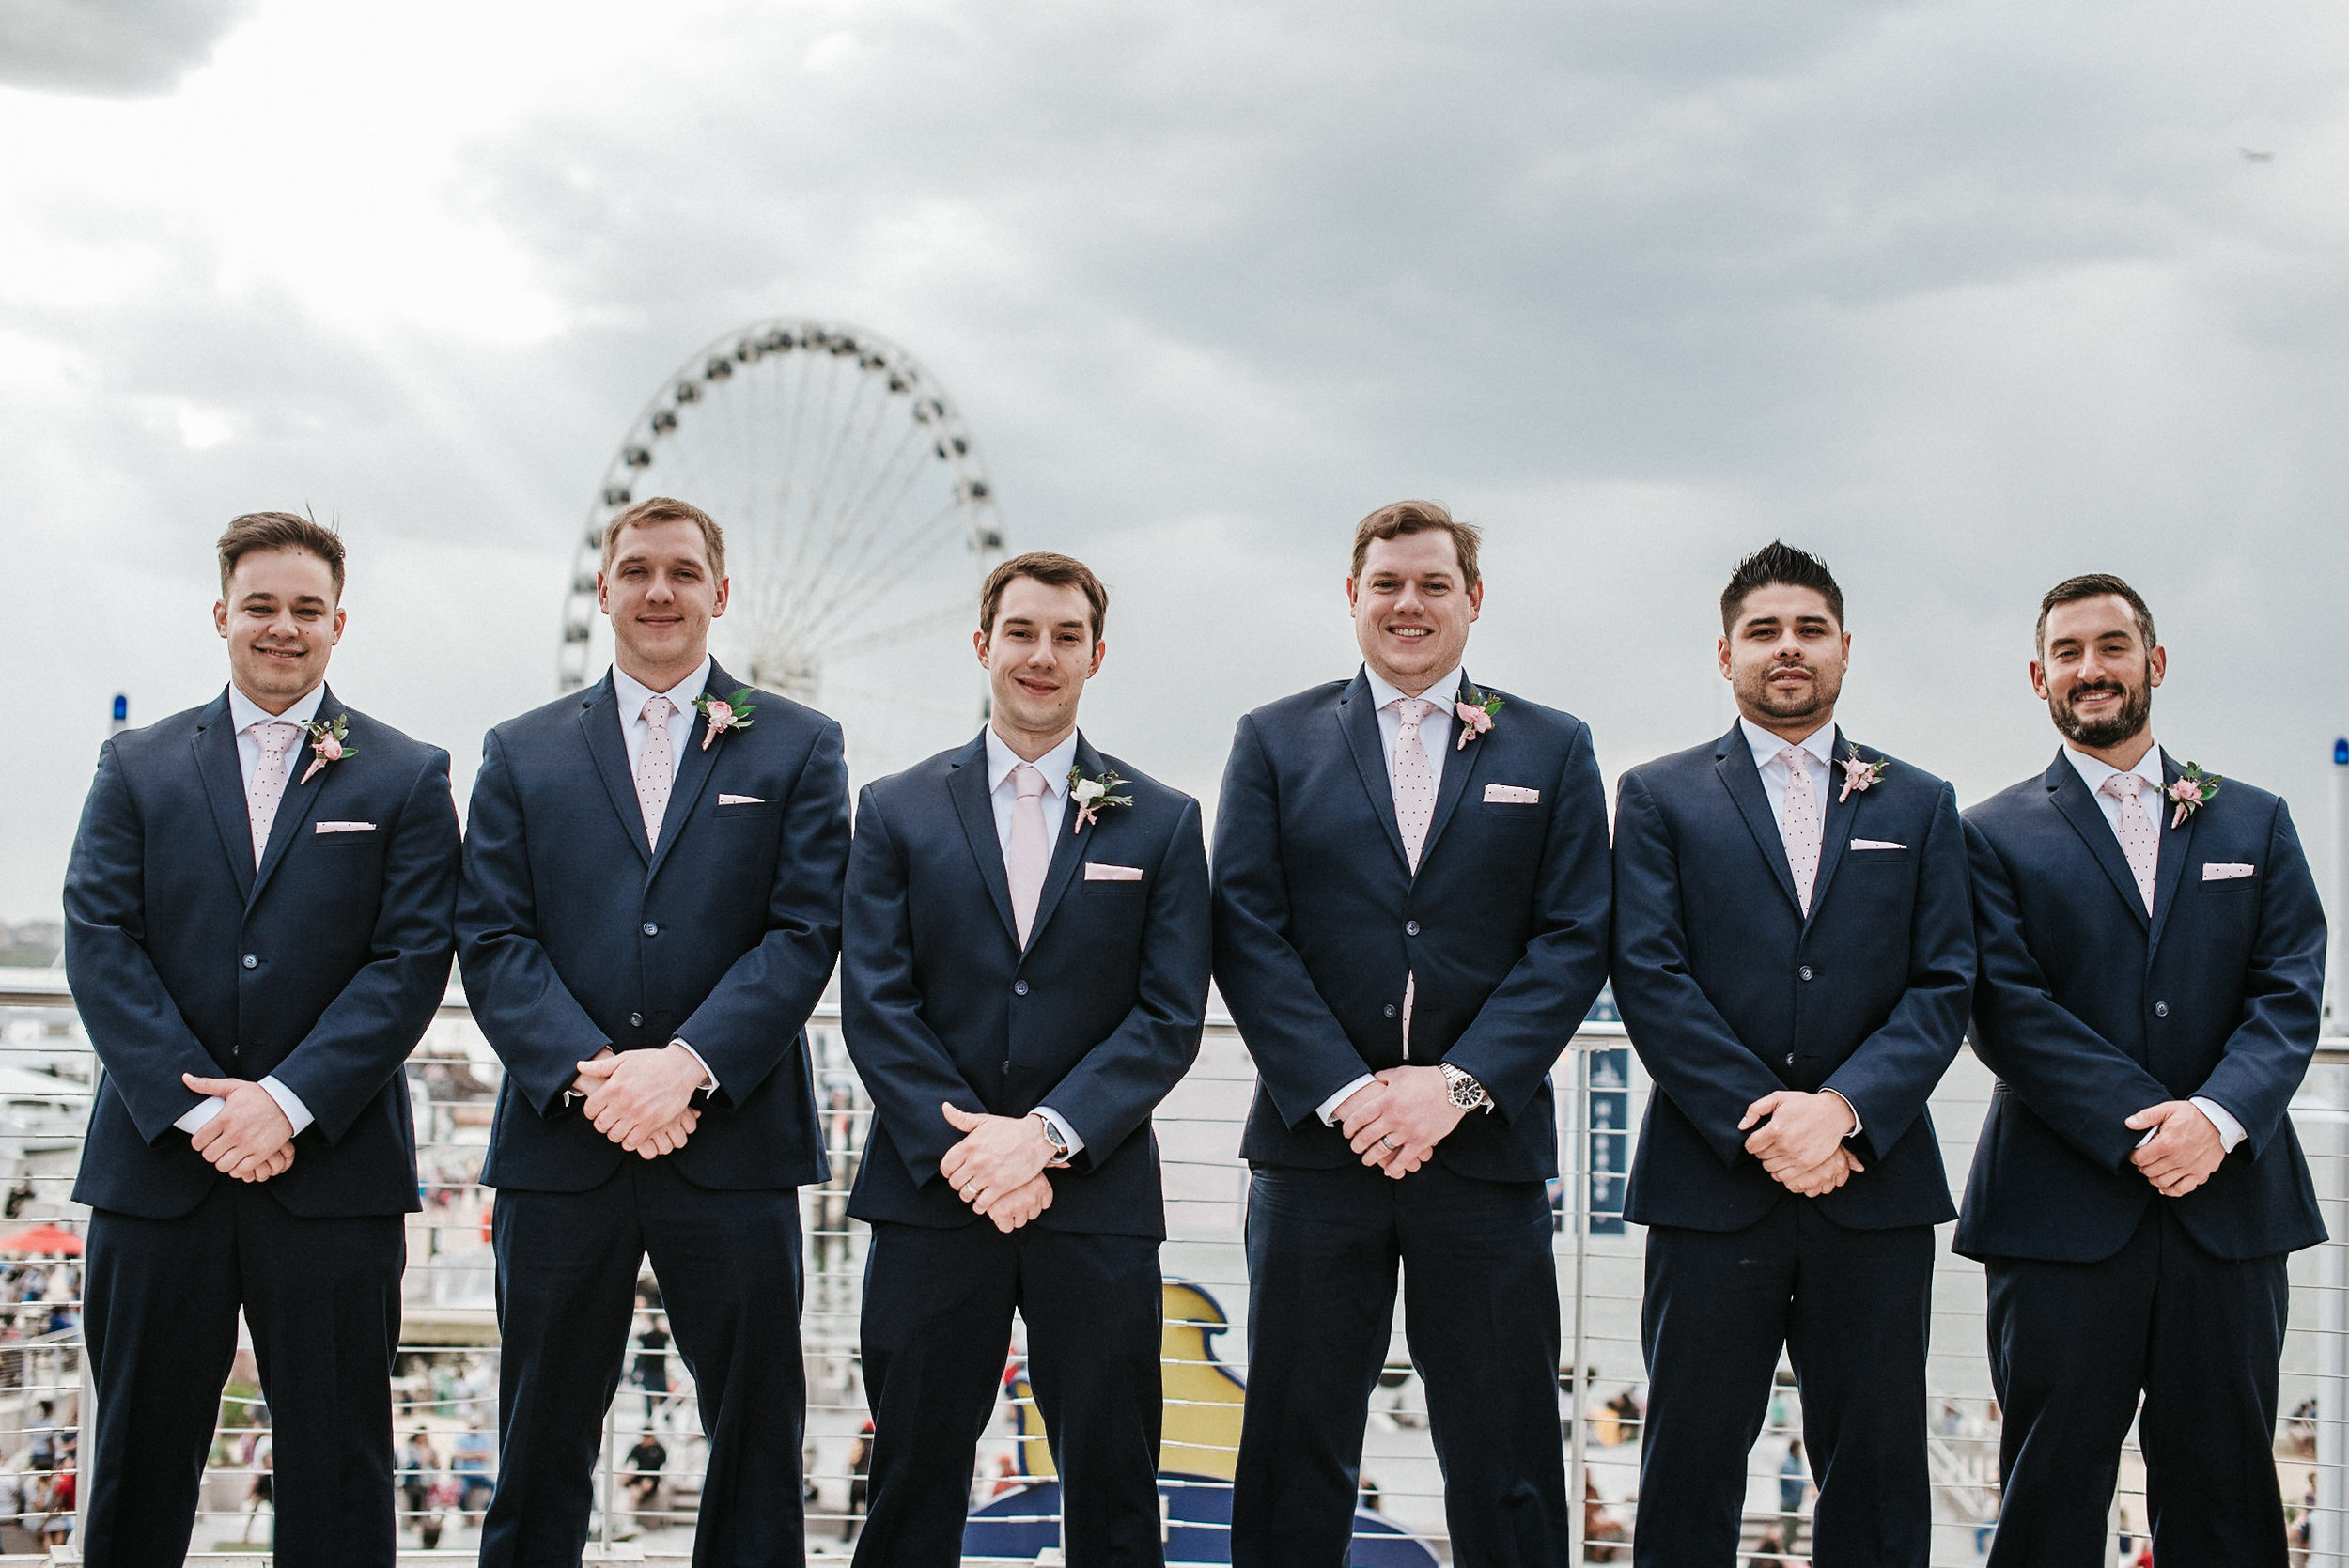 Groomsmen in front of ferris wheel